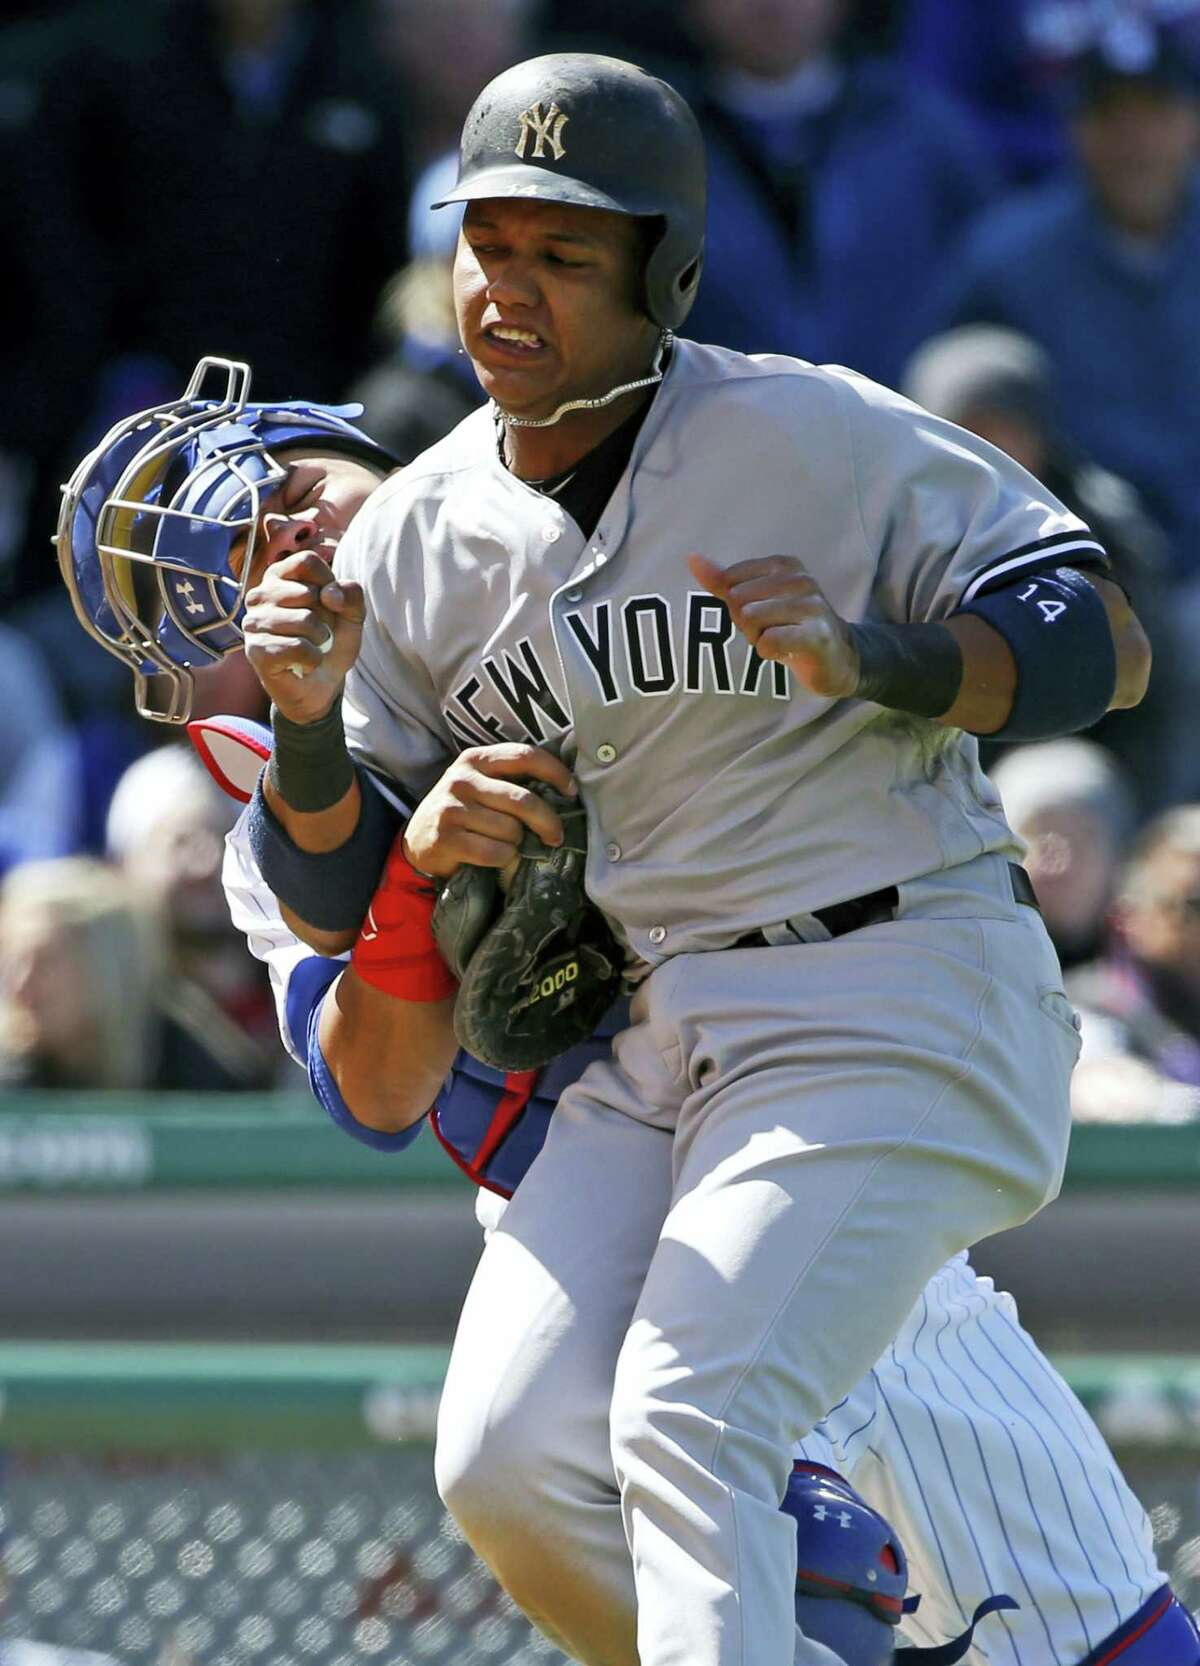 Cubs catcher Willson Contreras, left, tags out the Yankees' Starlin Castro as they collide in the sixth inning Friday.